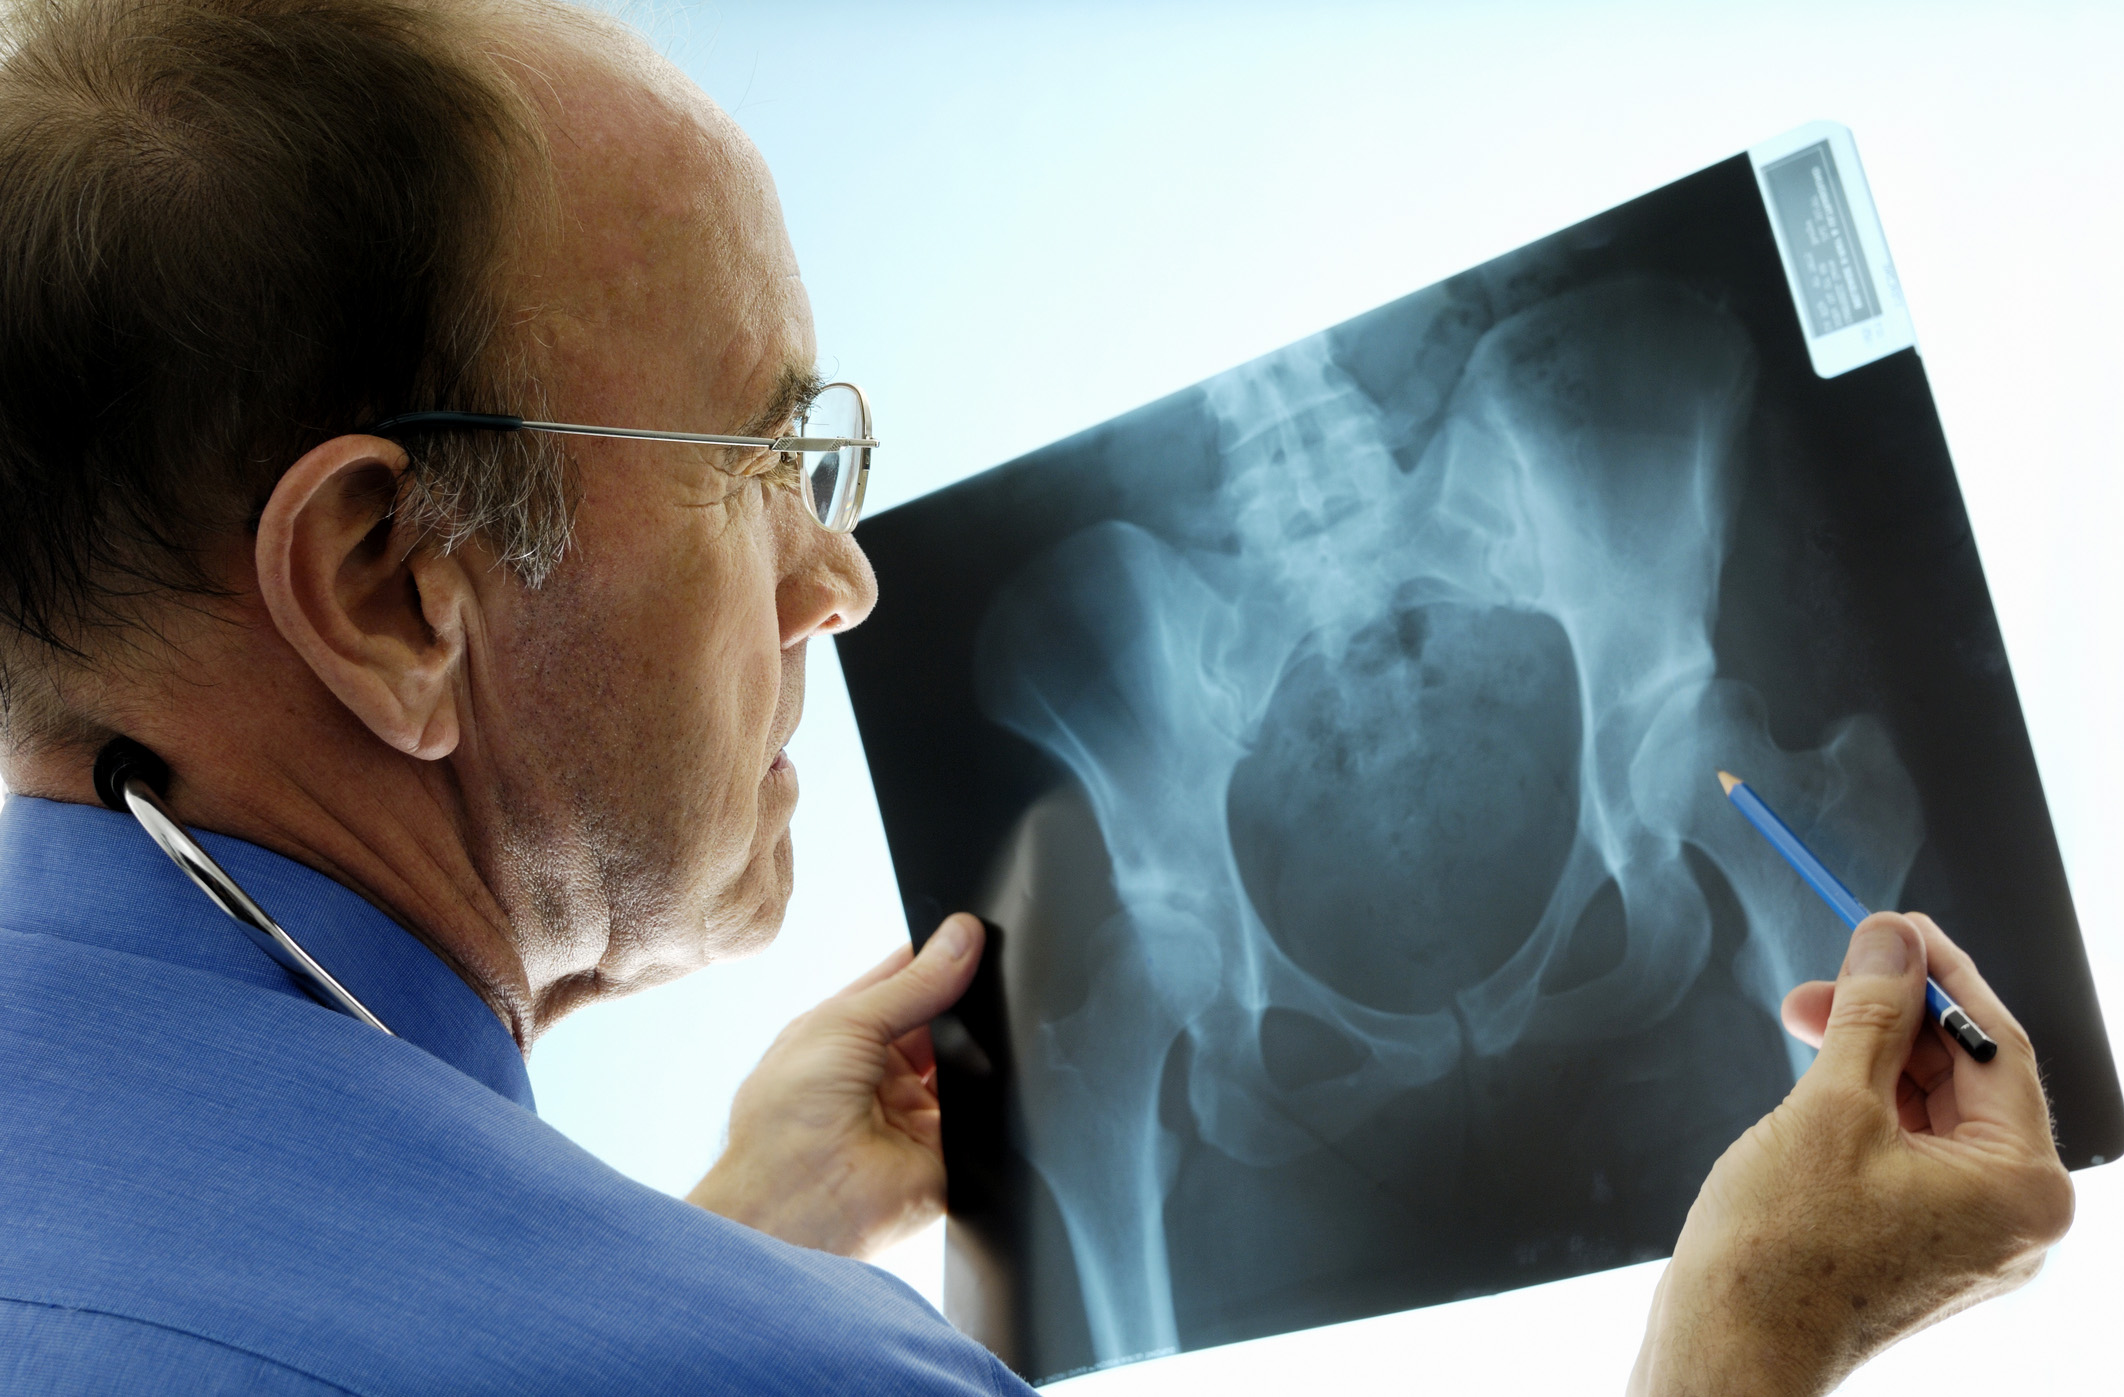 Orthopedic Surgeons Seven Things You Need to Know   Penn Medicine